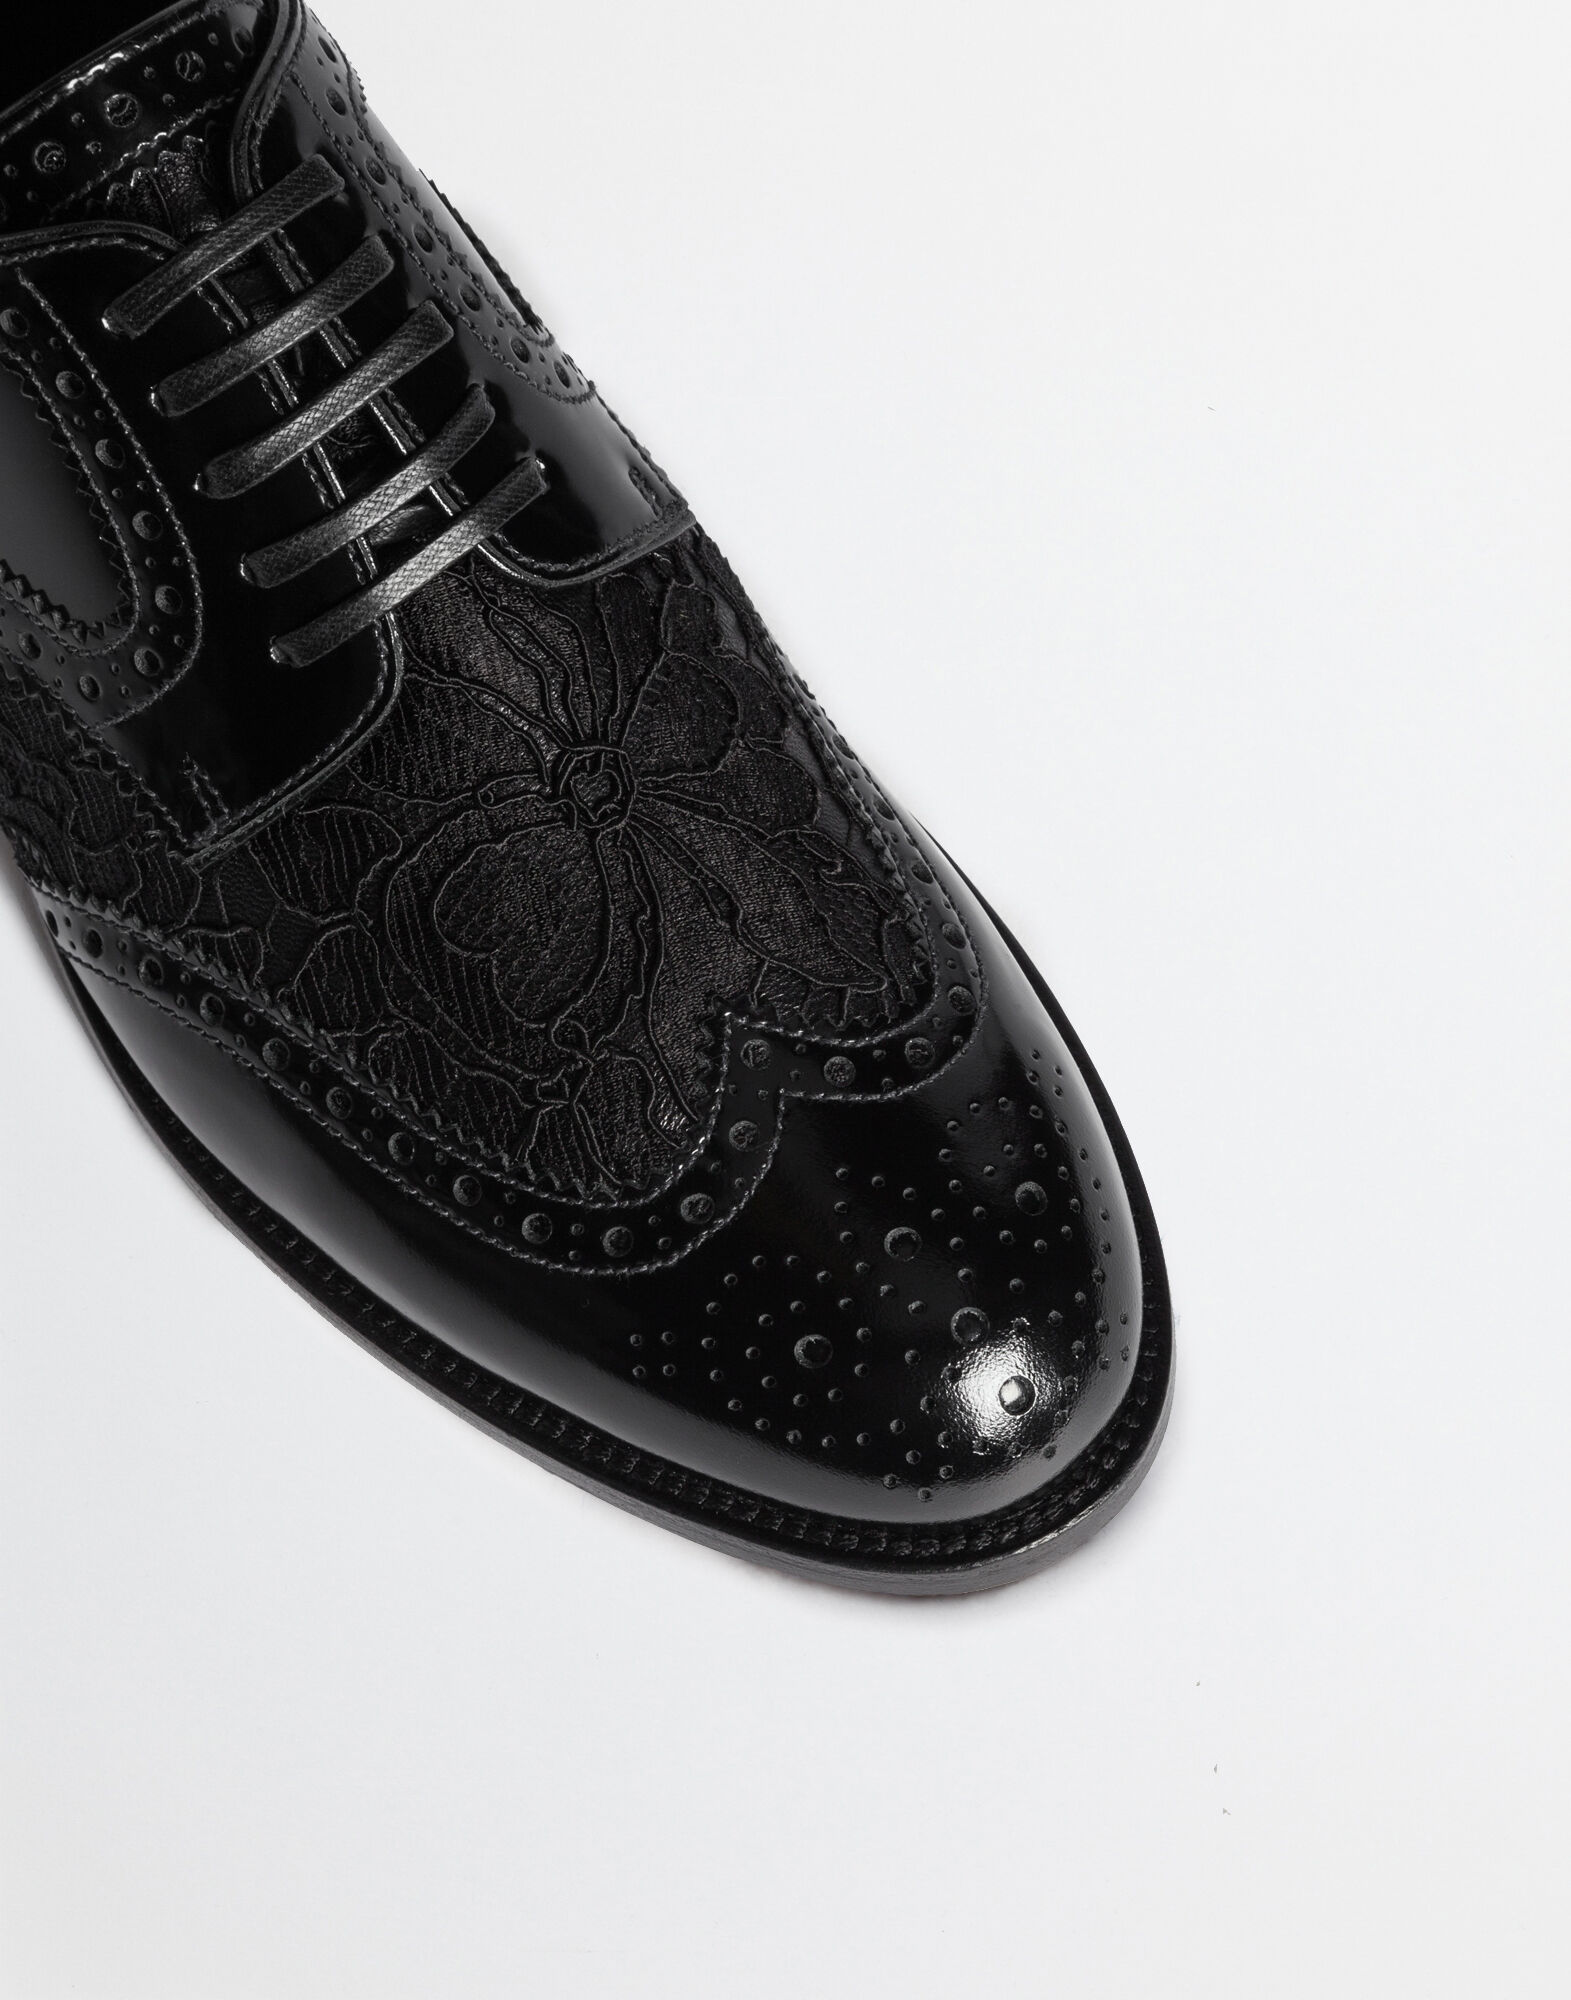 LEATHER DERBY SHOE WITH LACE DETAIL